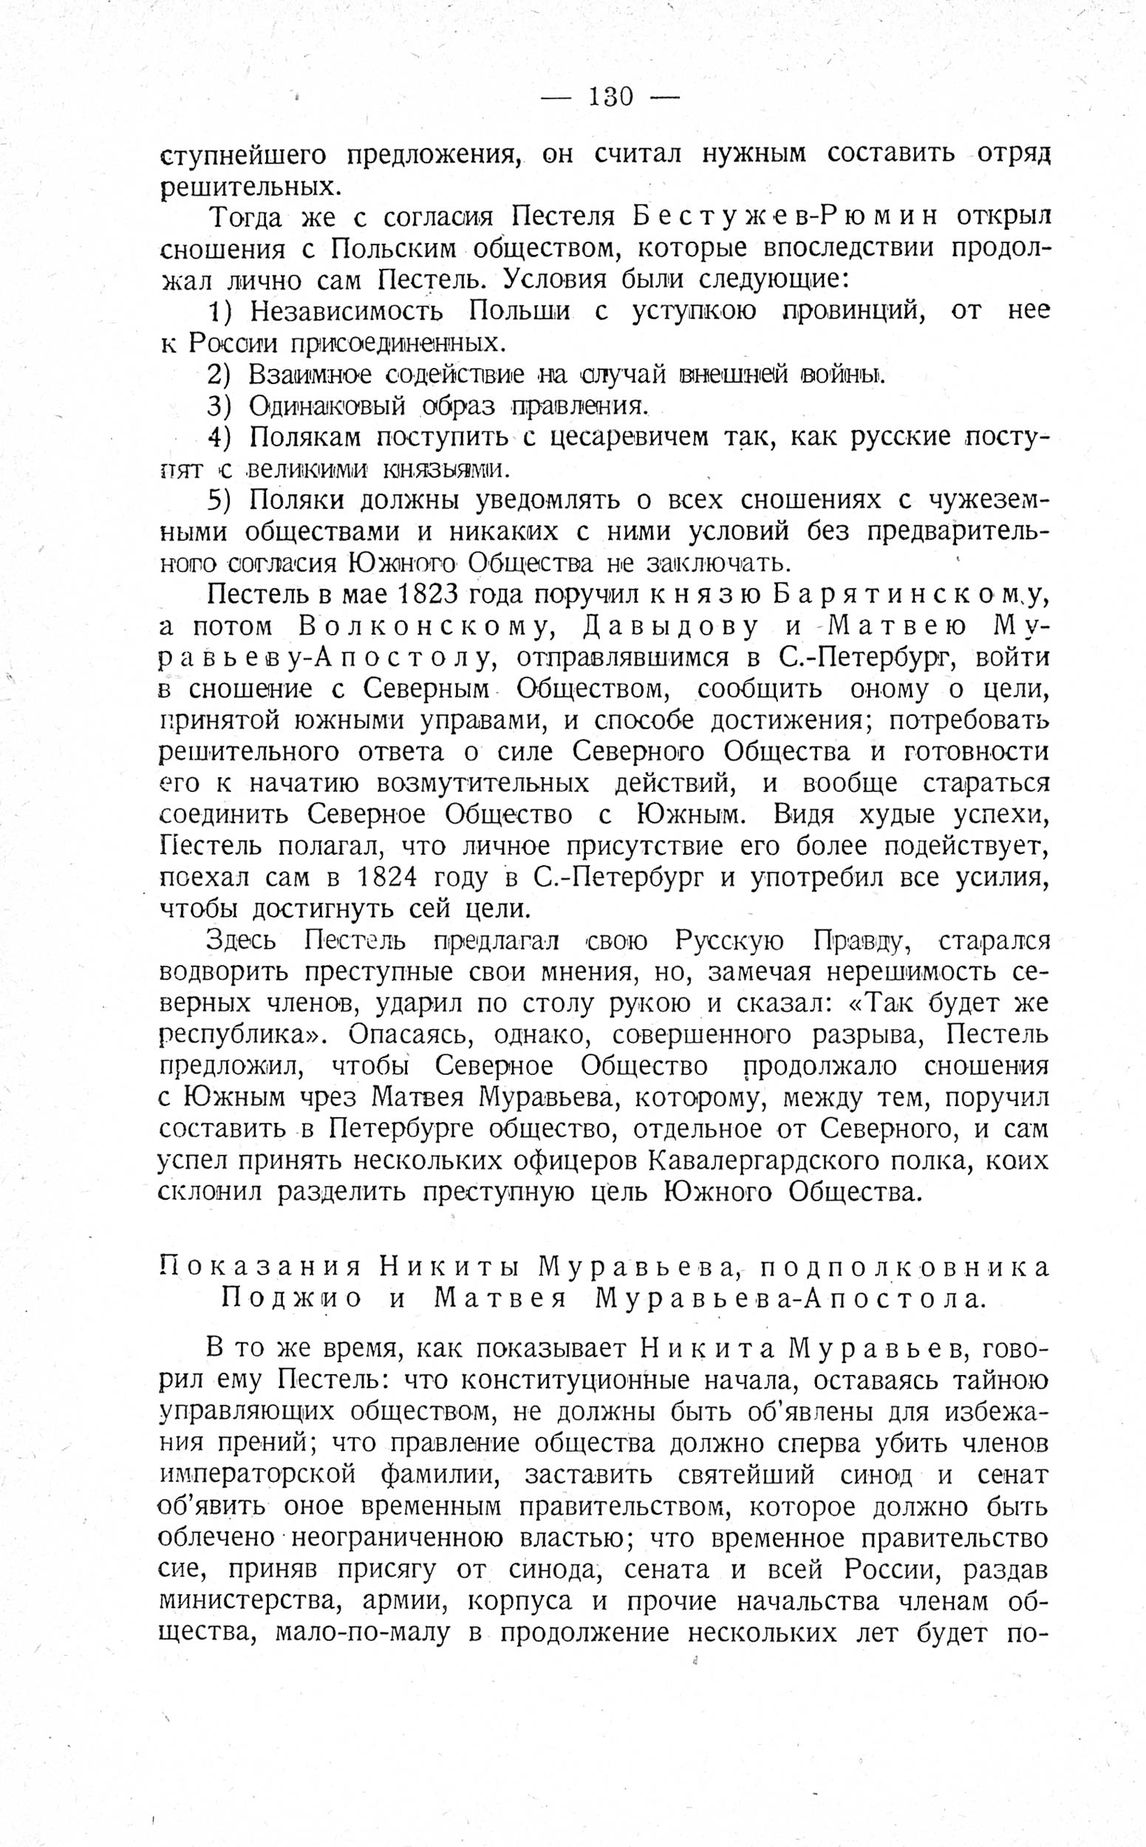 http://elib.shpl.ru/pages/625713/zooms/7